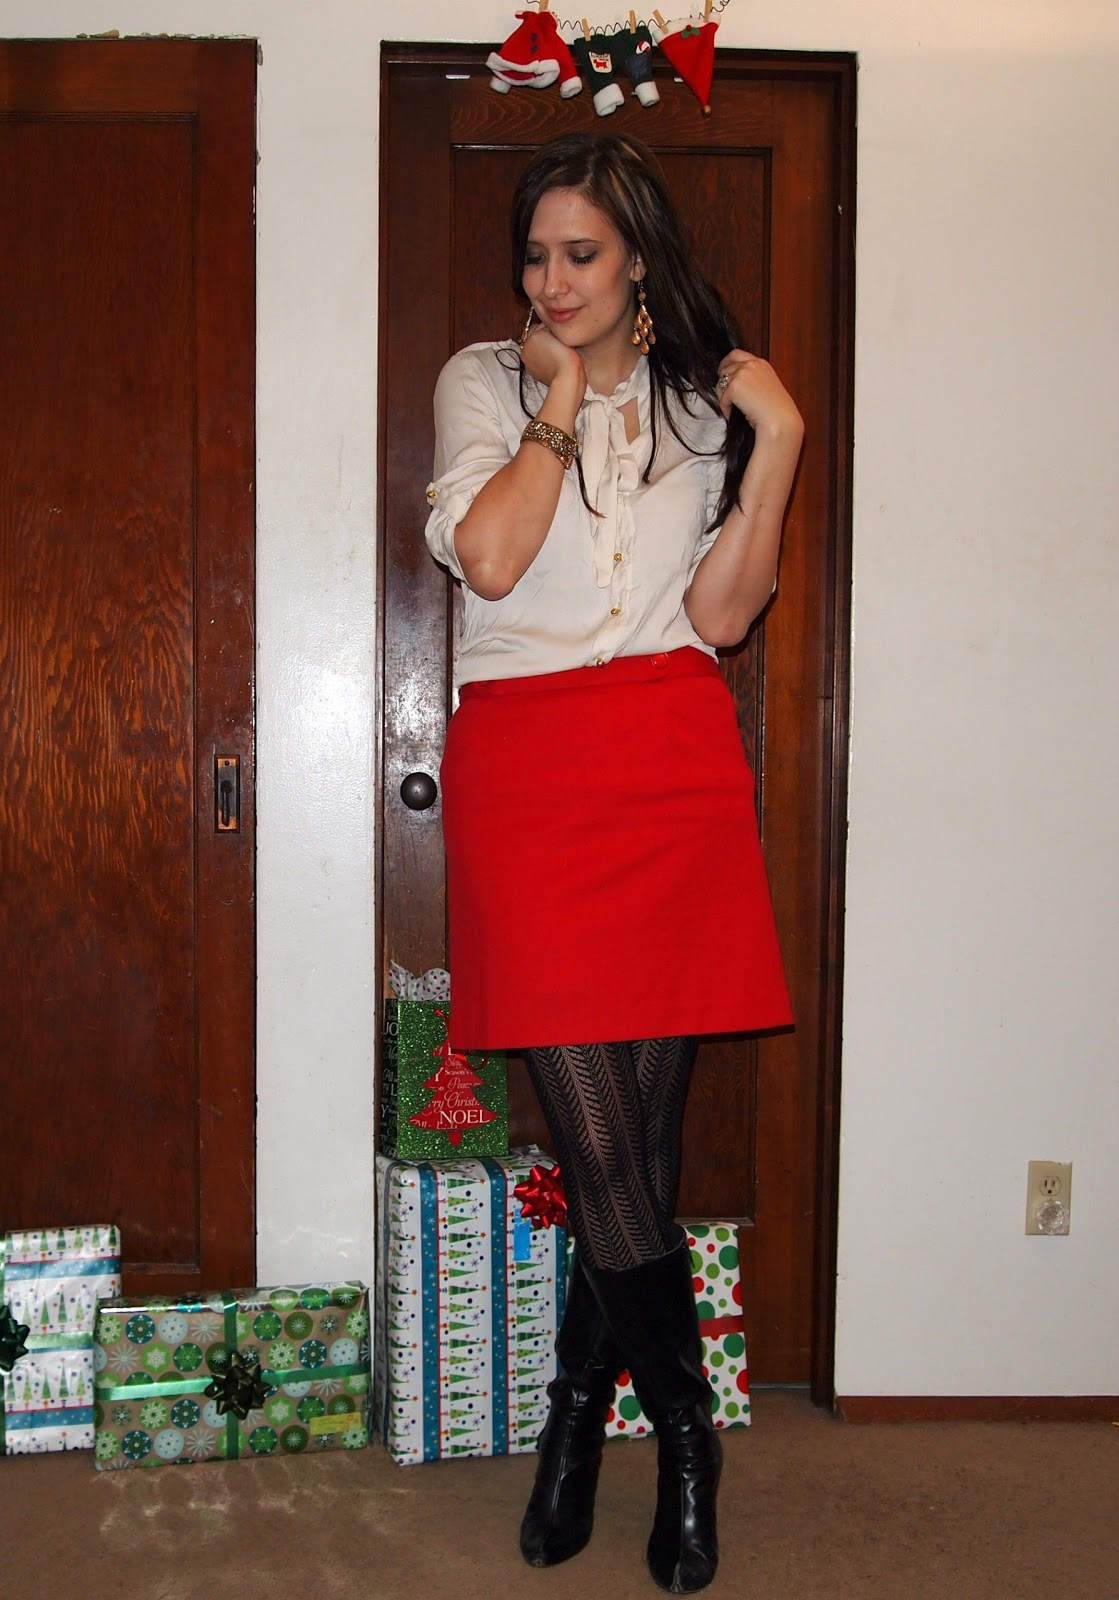 8c56877f152fd Top: Kohl's, Blazer: Maurices, Skirt: Clothes Mentor, Tights: Kohl's,  Boots: Elder Beerman,